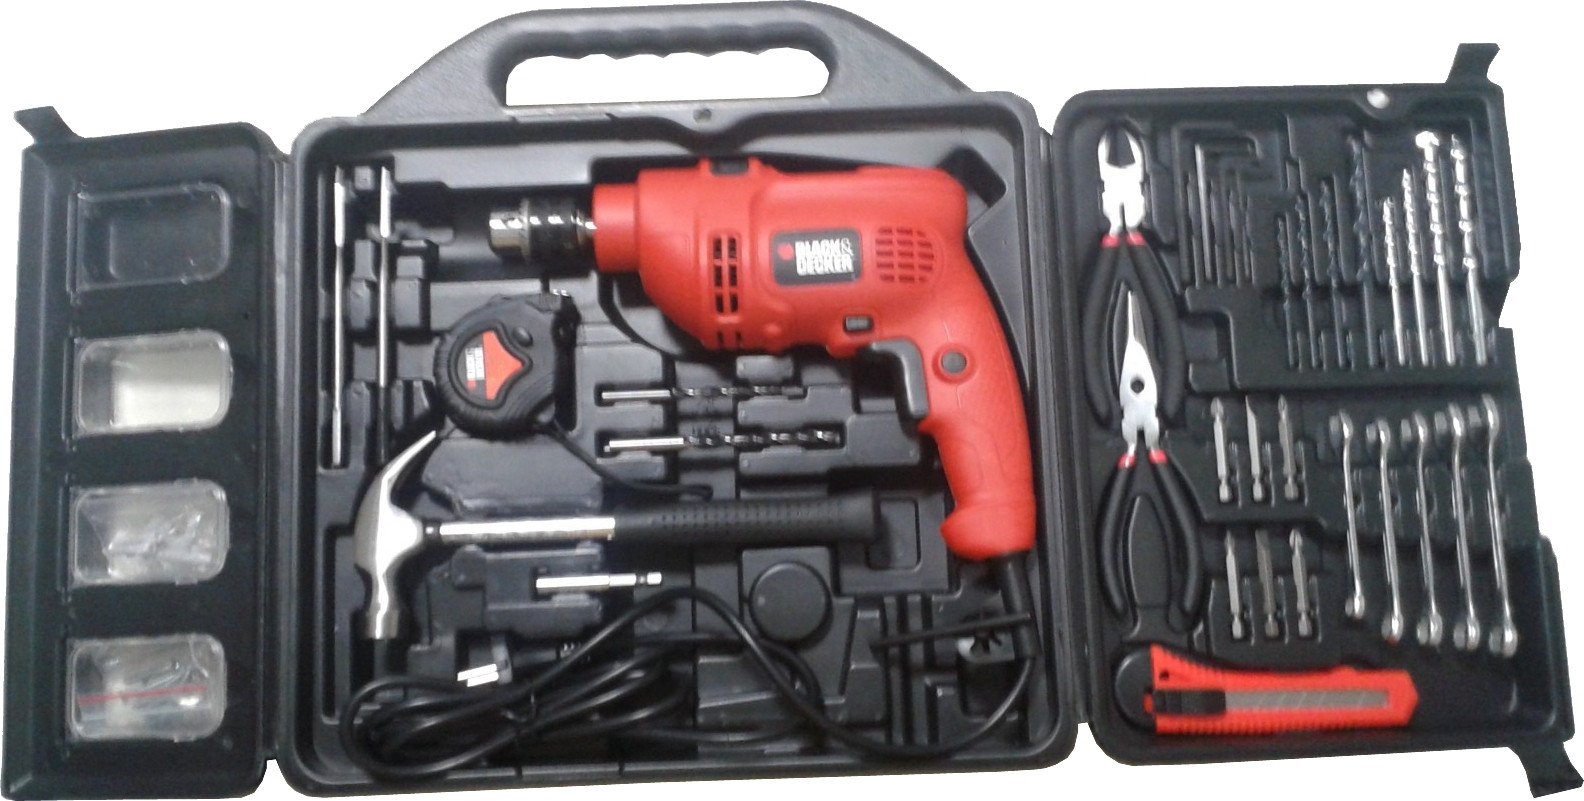 Black Amp Decker Price List In India Buy Black Amp Decker